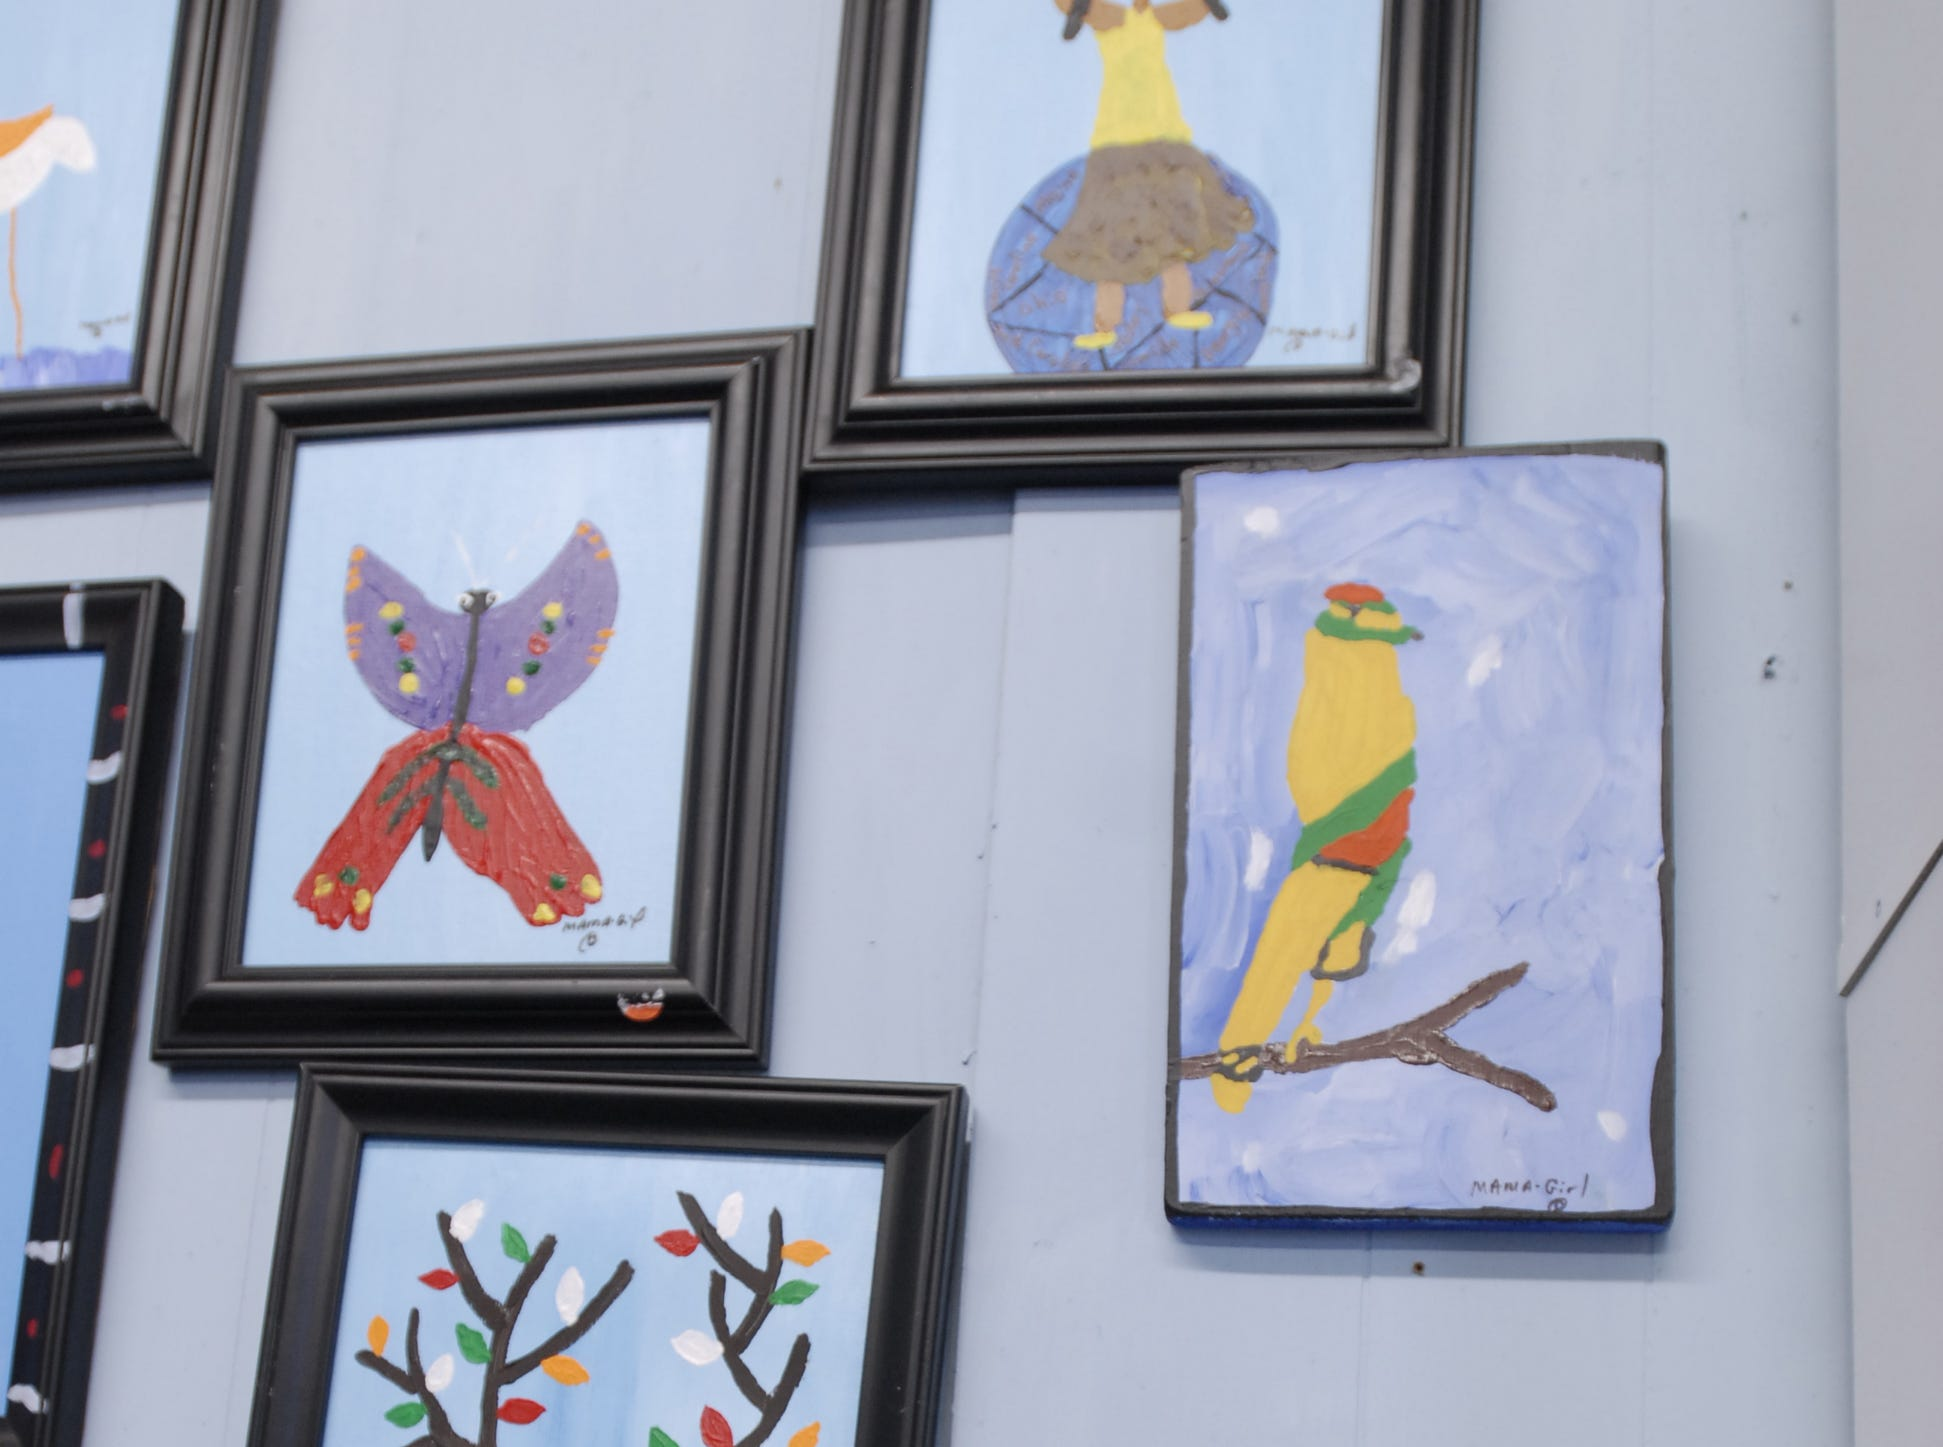 A collection of pieces created by Mama Girl in paper and paint at her studio near Painter.